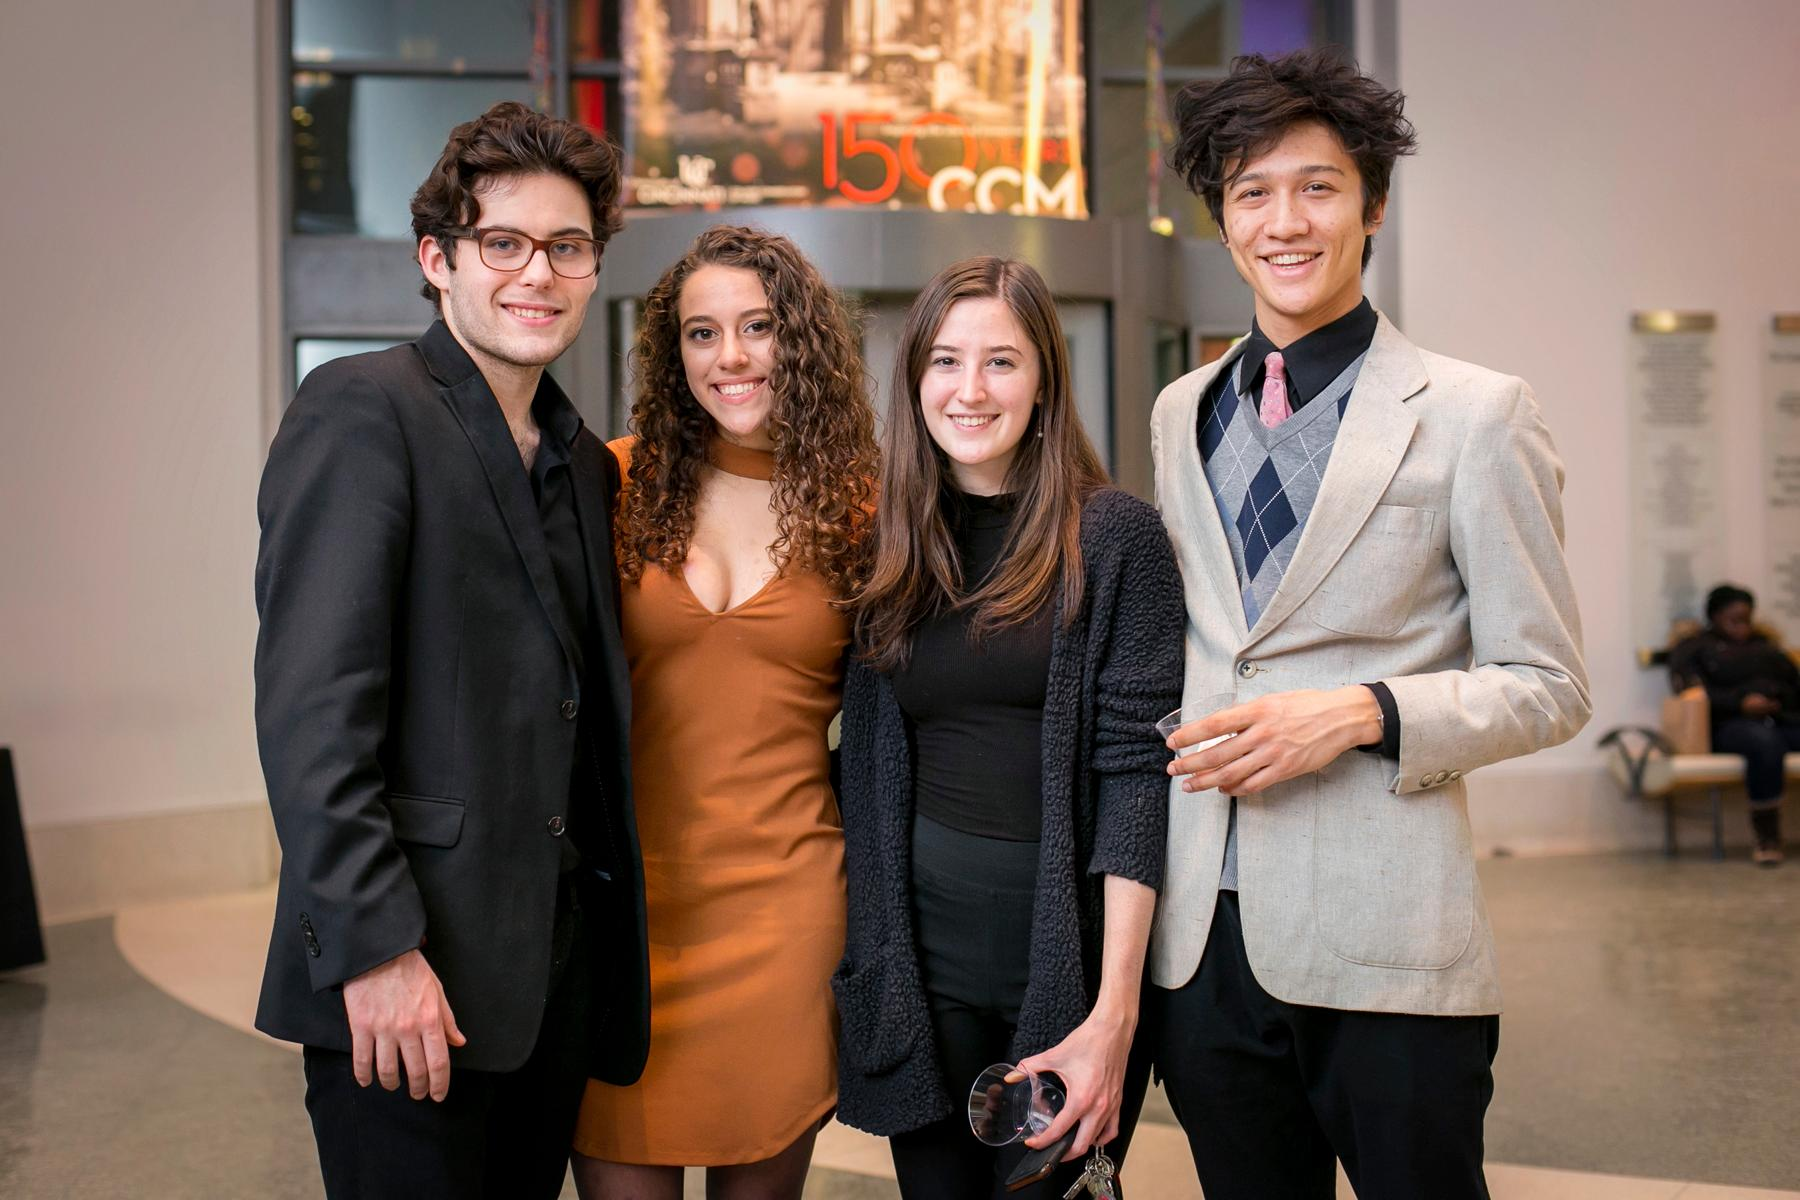 Pictured: Justin Dawson, Sophie Privitera, Shannon Lock, and Jeremy Myint / Event: CCM's A Moveable Feast (1.19.18) / Image: Mike Bresnen Photography // Published: 2.2.18